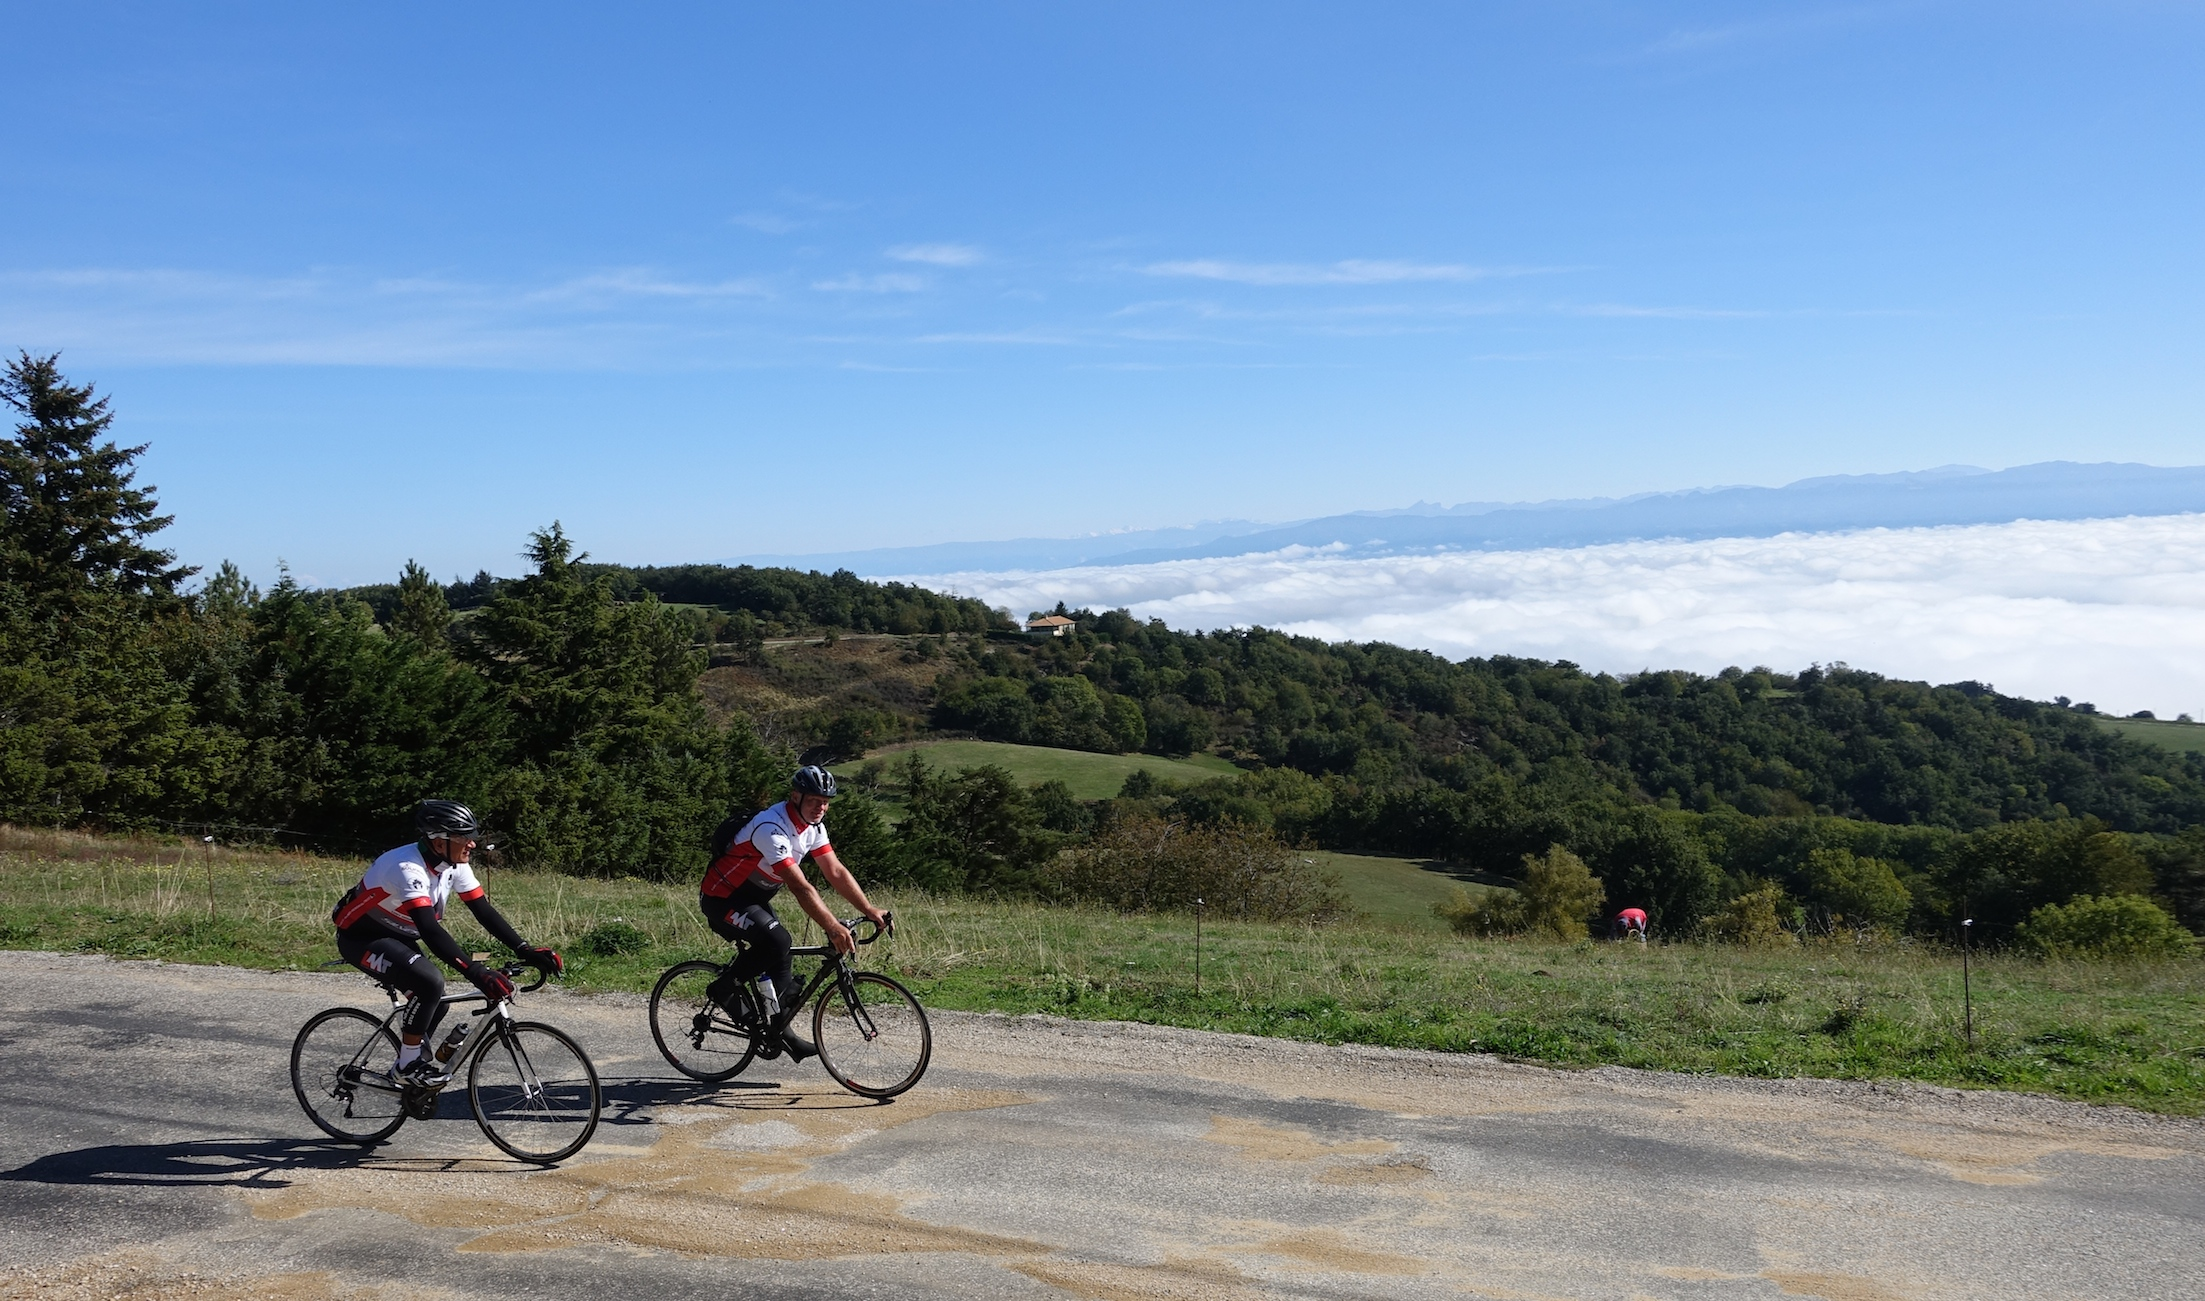 Allan Greenfield and Thomas Fabe, c.4 hours into the stage. Below them, the Rhone Valley has a cloud inversion!